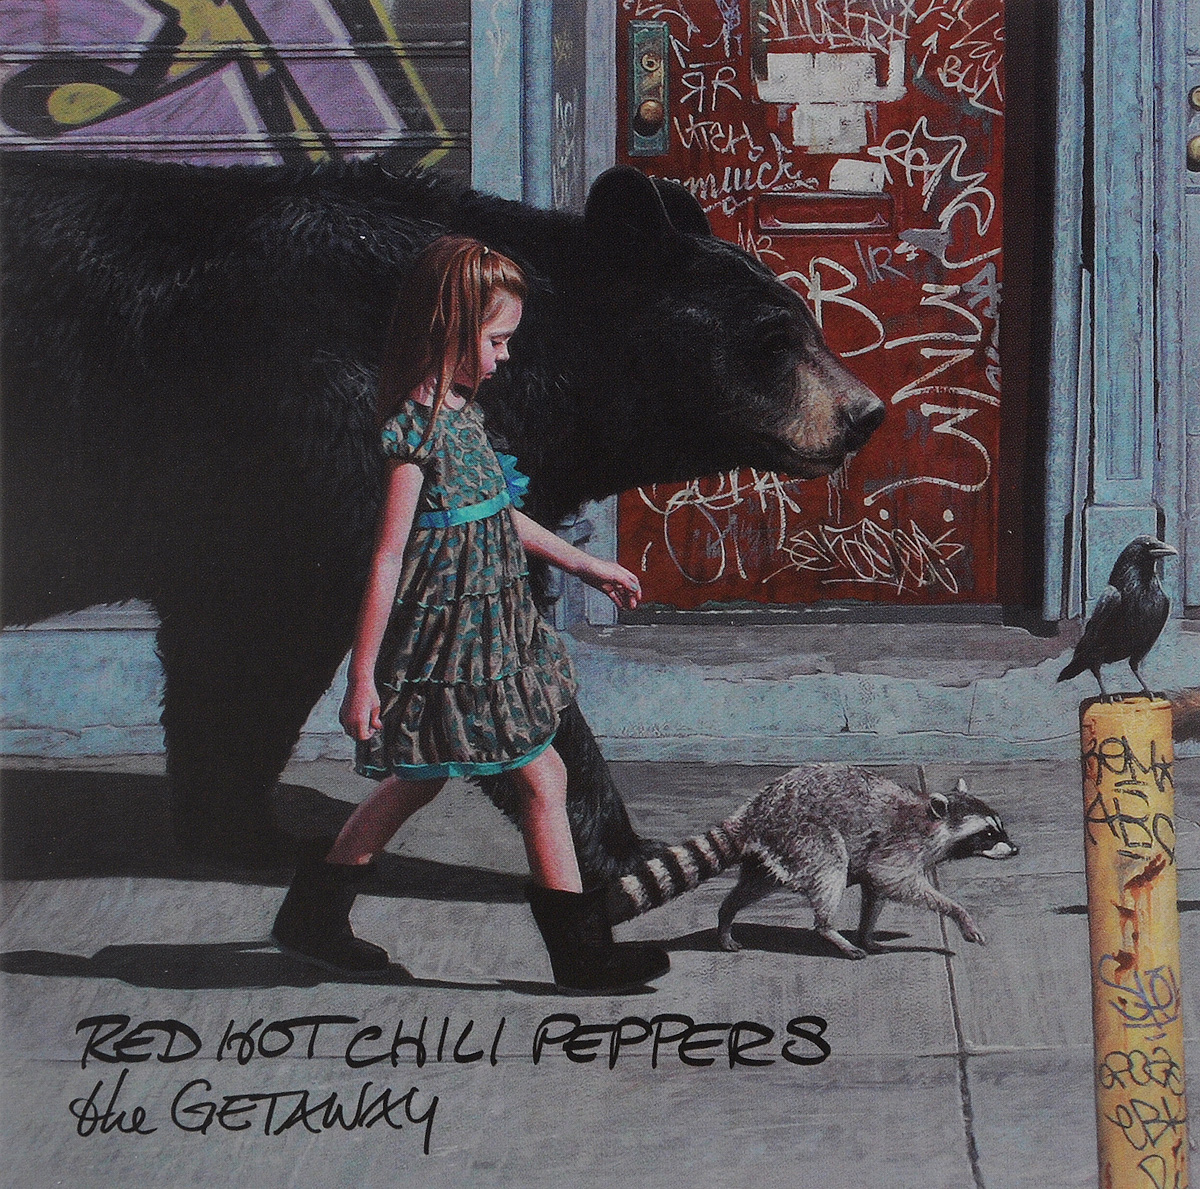 The Red Hot Chili Peppers Red Hot Chili Peppers. The Getaway